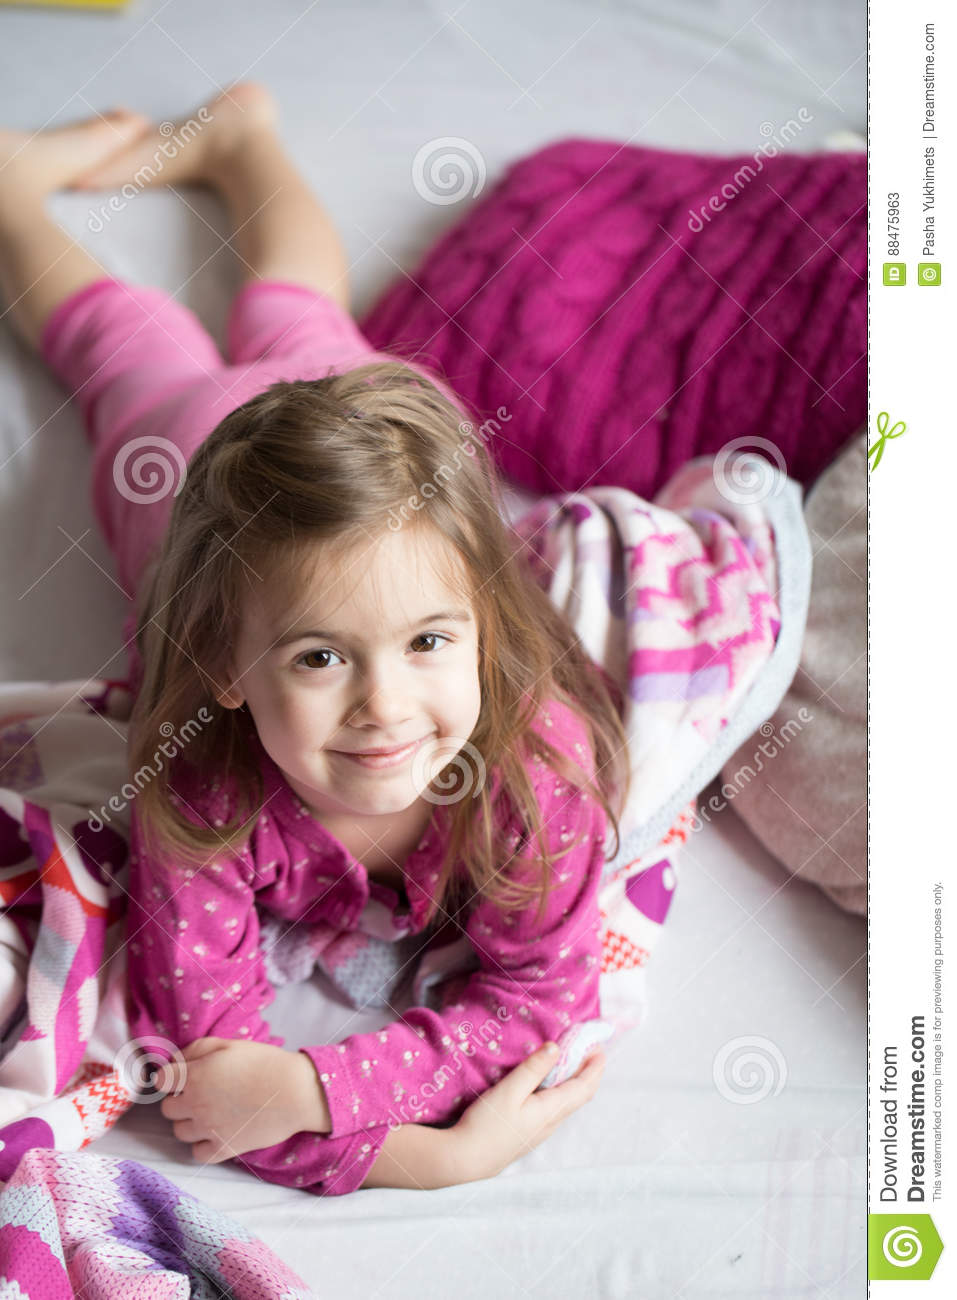 Share little girl sleeping in bed feet with